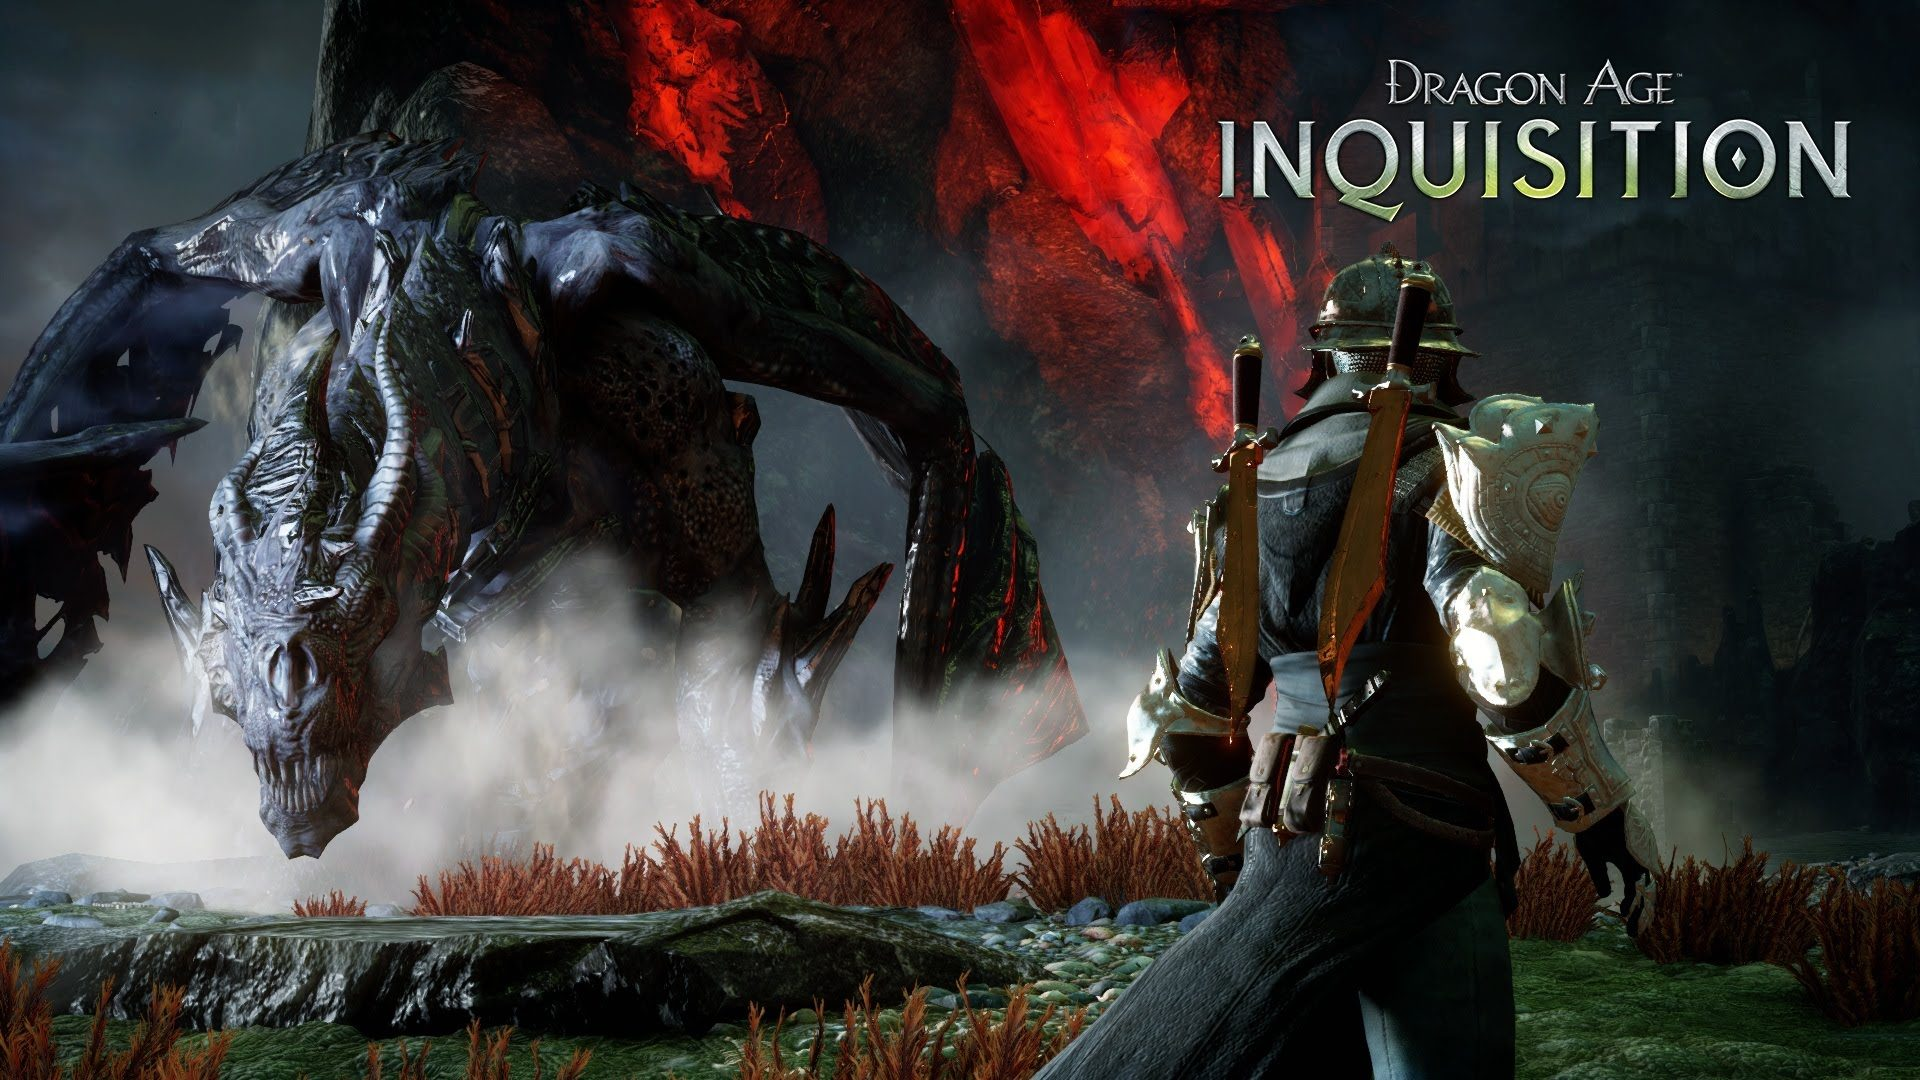 Dragon Age: Inquisition games for PC